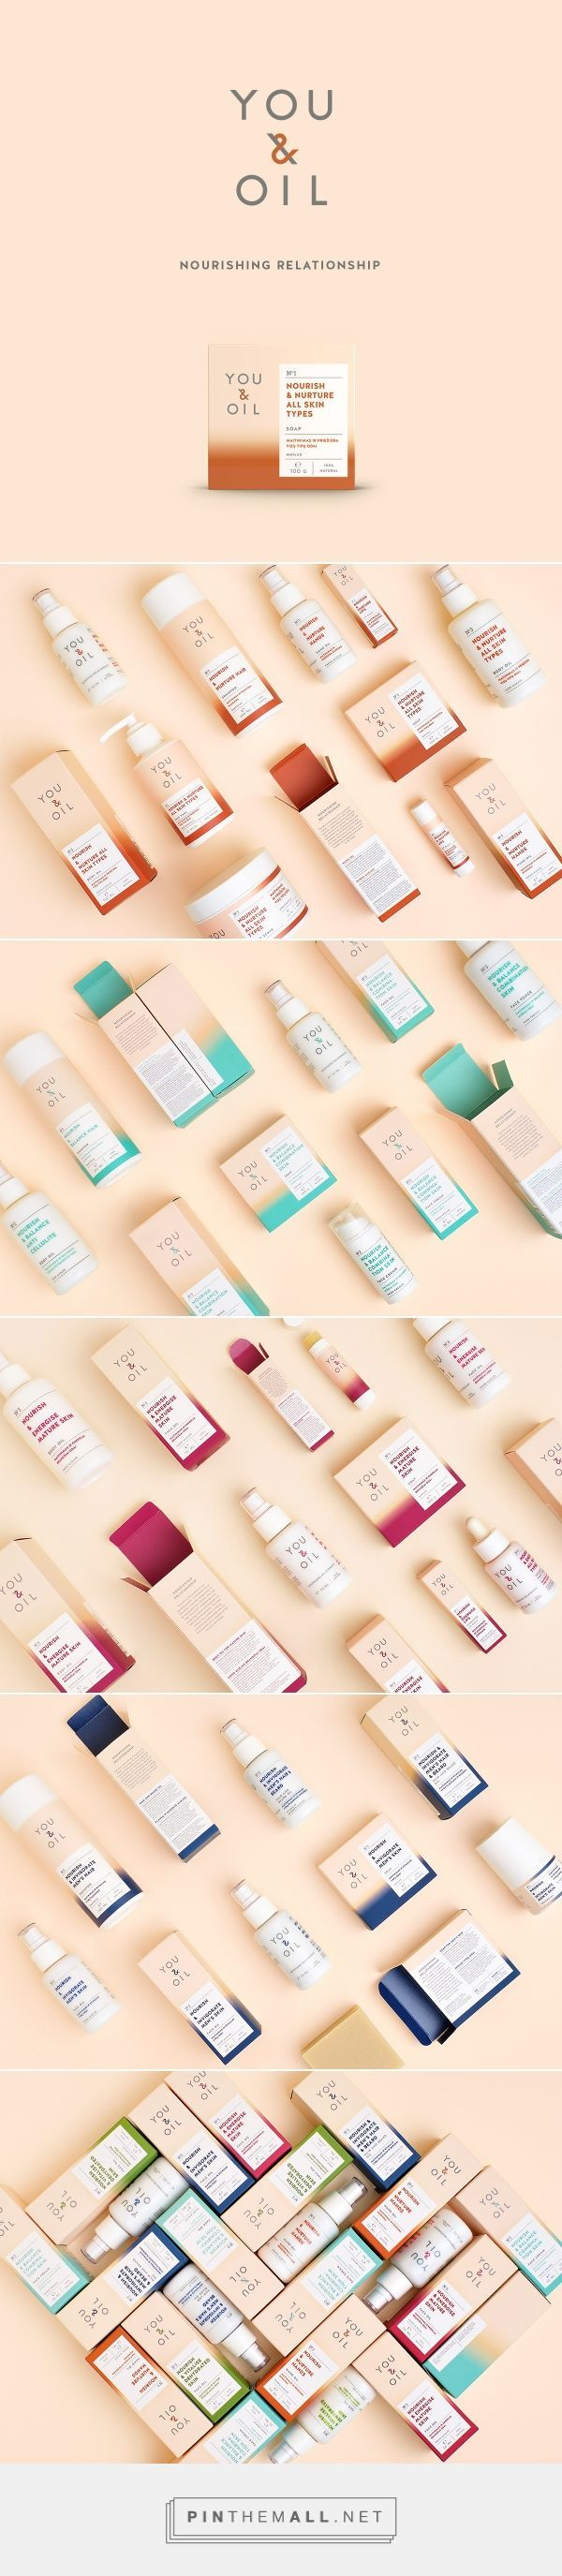 """Branding, graphic design and packaging for YOU & OIL natural cosmetics targeting Millennials on Behance curated by Packaging Diva PD. New design and logo for natural cosmetics """"You & Oil"""", created after brand strategy proposed by """"Black Swan Brands""""."""